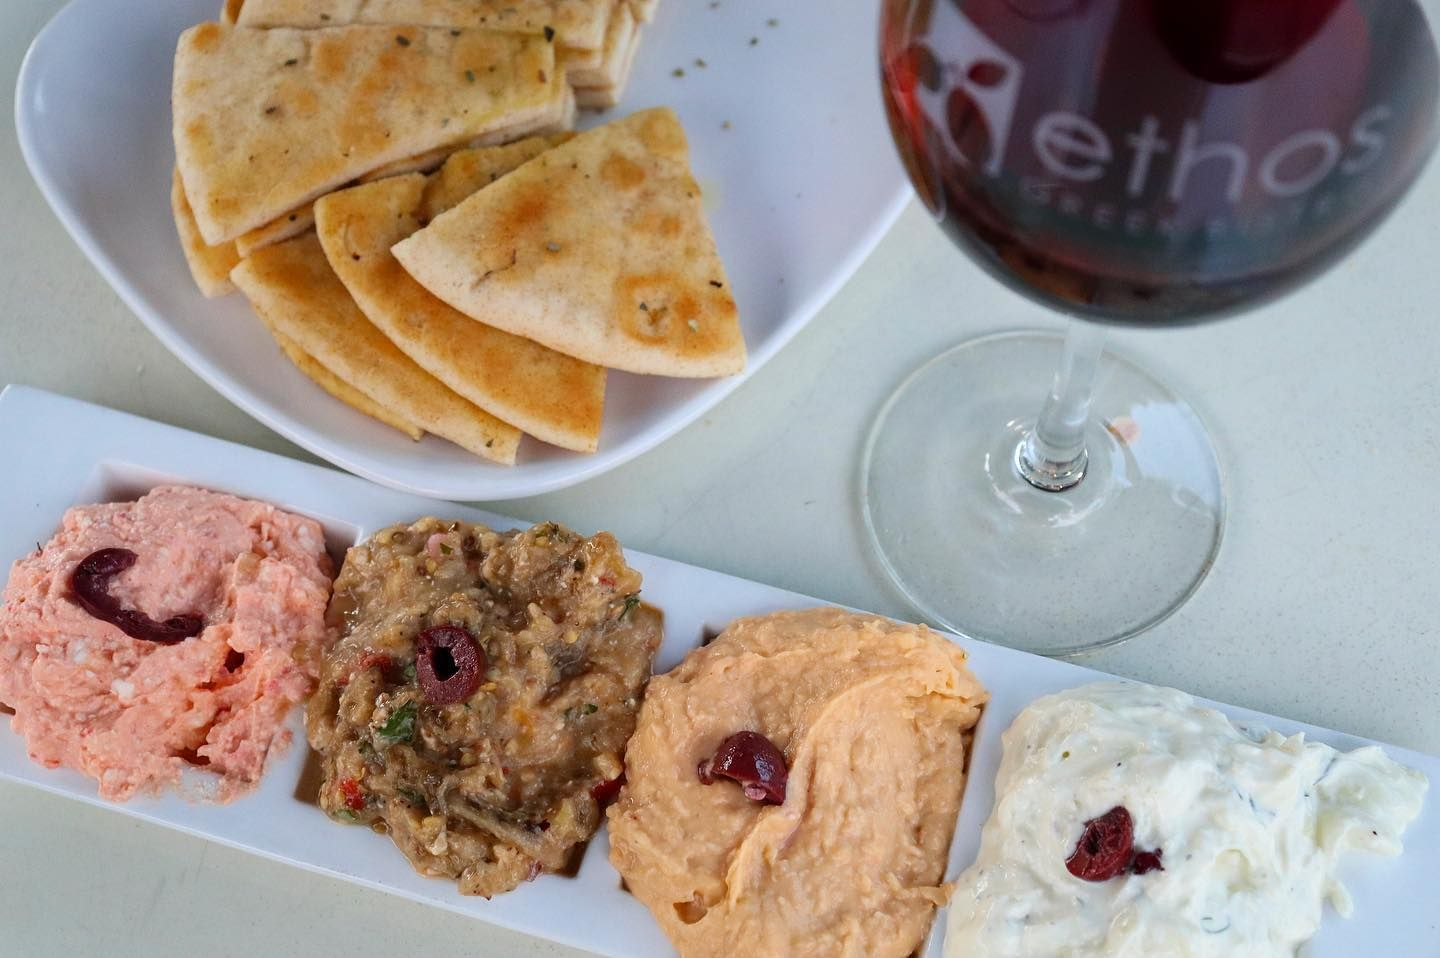 We've got your Friday night dinner plans covered! Head to #ethobistro — their spread sampler is like no other.  We've got your Friday night dinner plans covered! Head to #ethobistro — their spread sampler is like no other. #fridaynightdinner